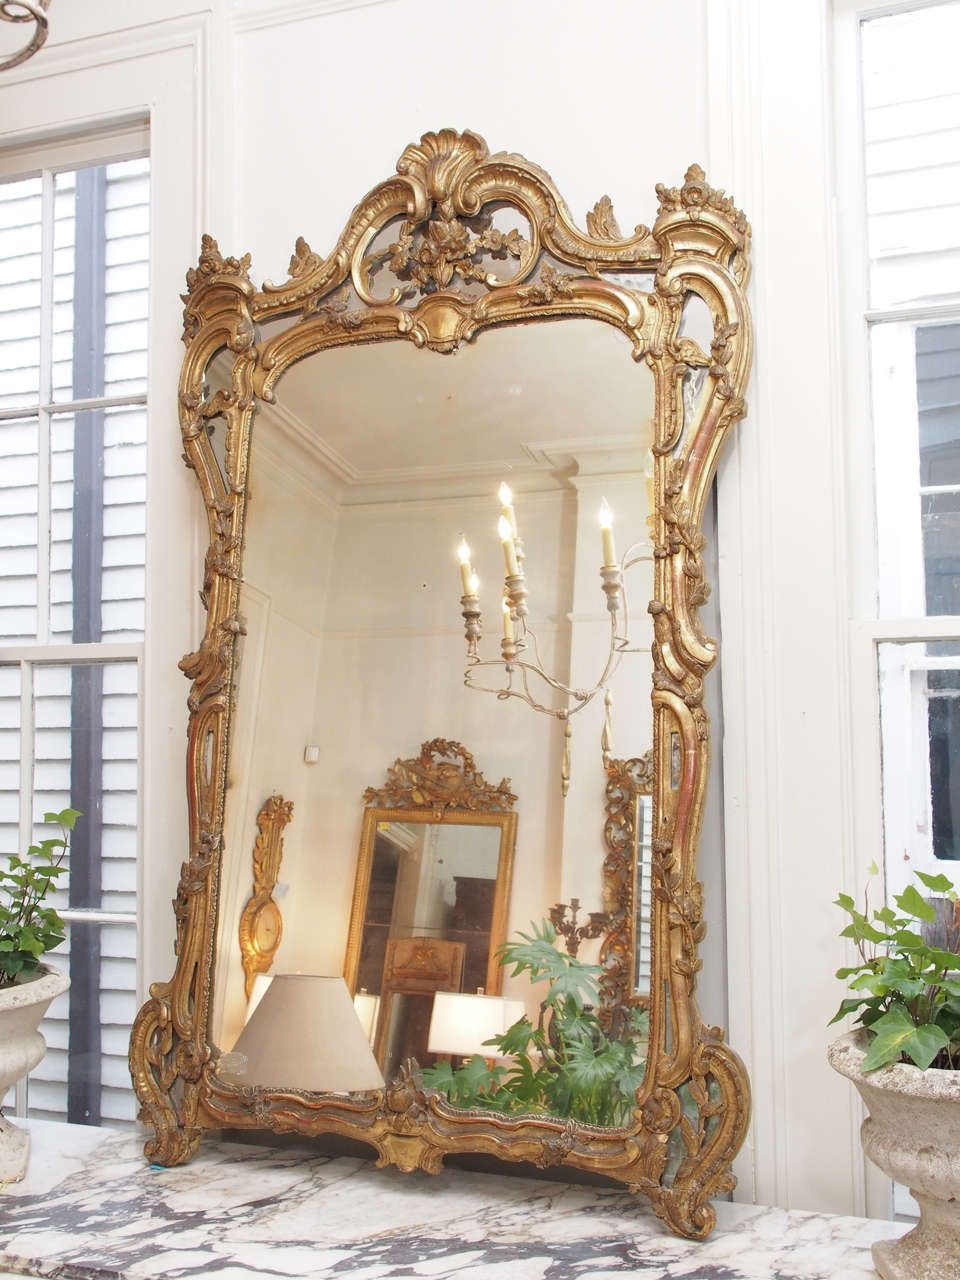 large white bathroom fireplace wall washed style height baroque products portrait mirror ornate french mirrors